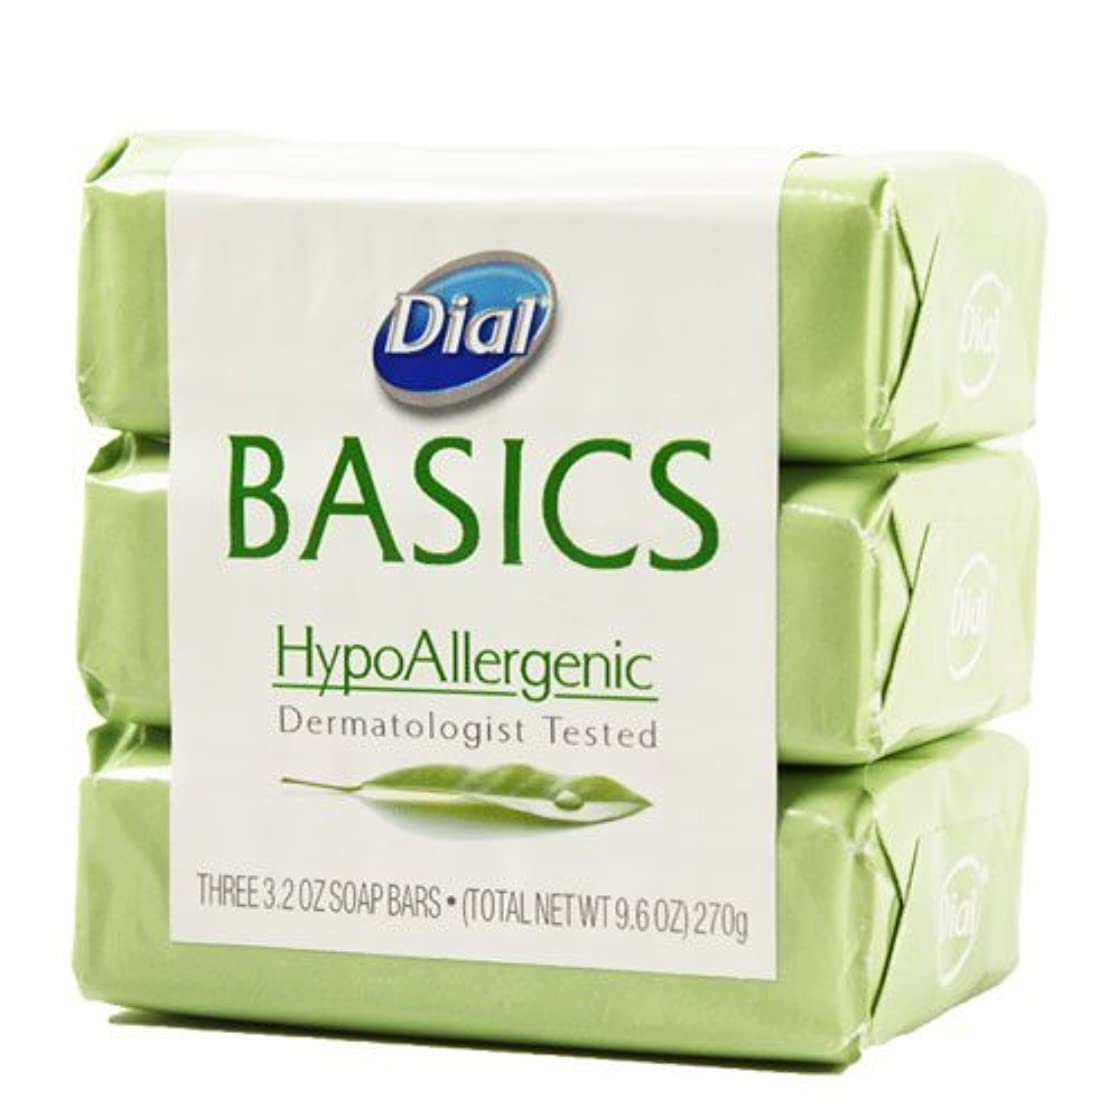 きょうだい会計行き当たりばったりDial Basics HypoAllergenic Dermatologist Tested Bar Soap, 3.2 oz (18 Bars) by Basics